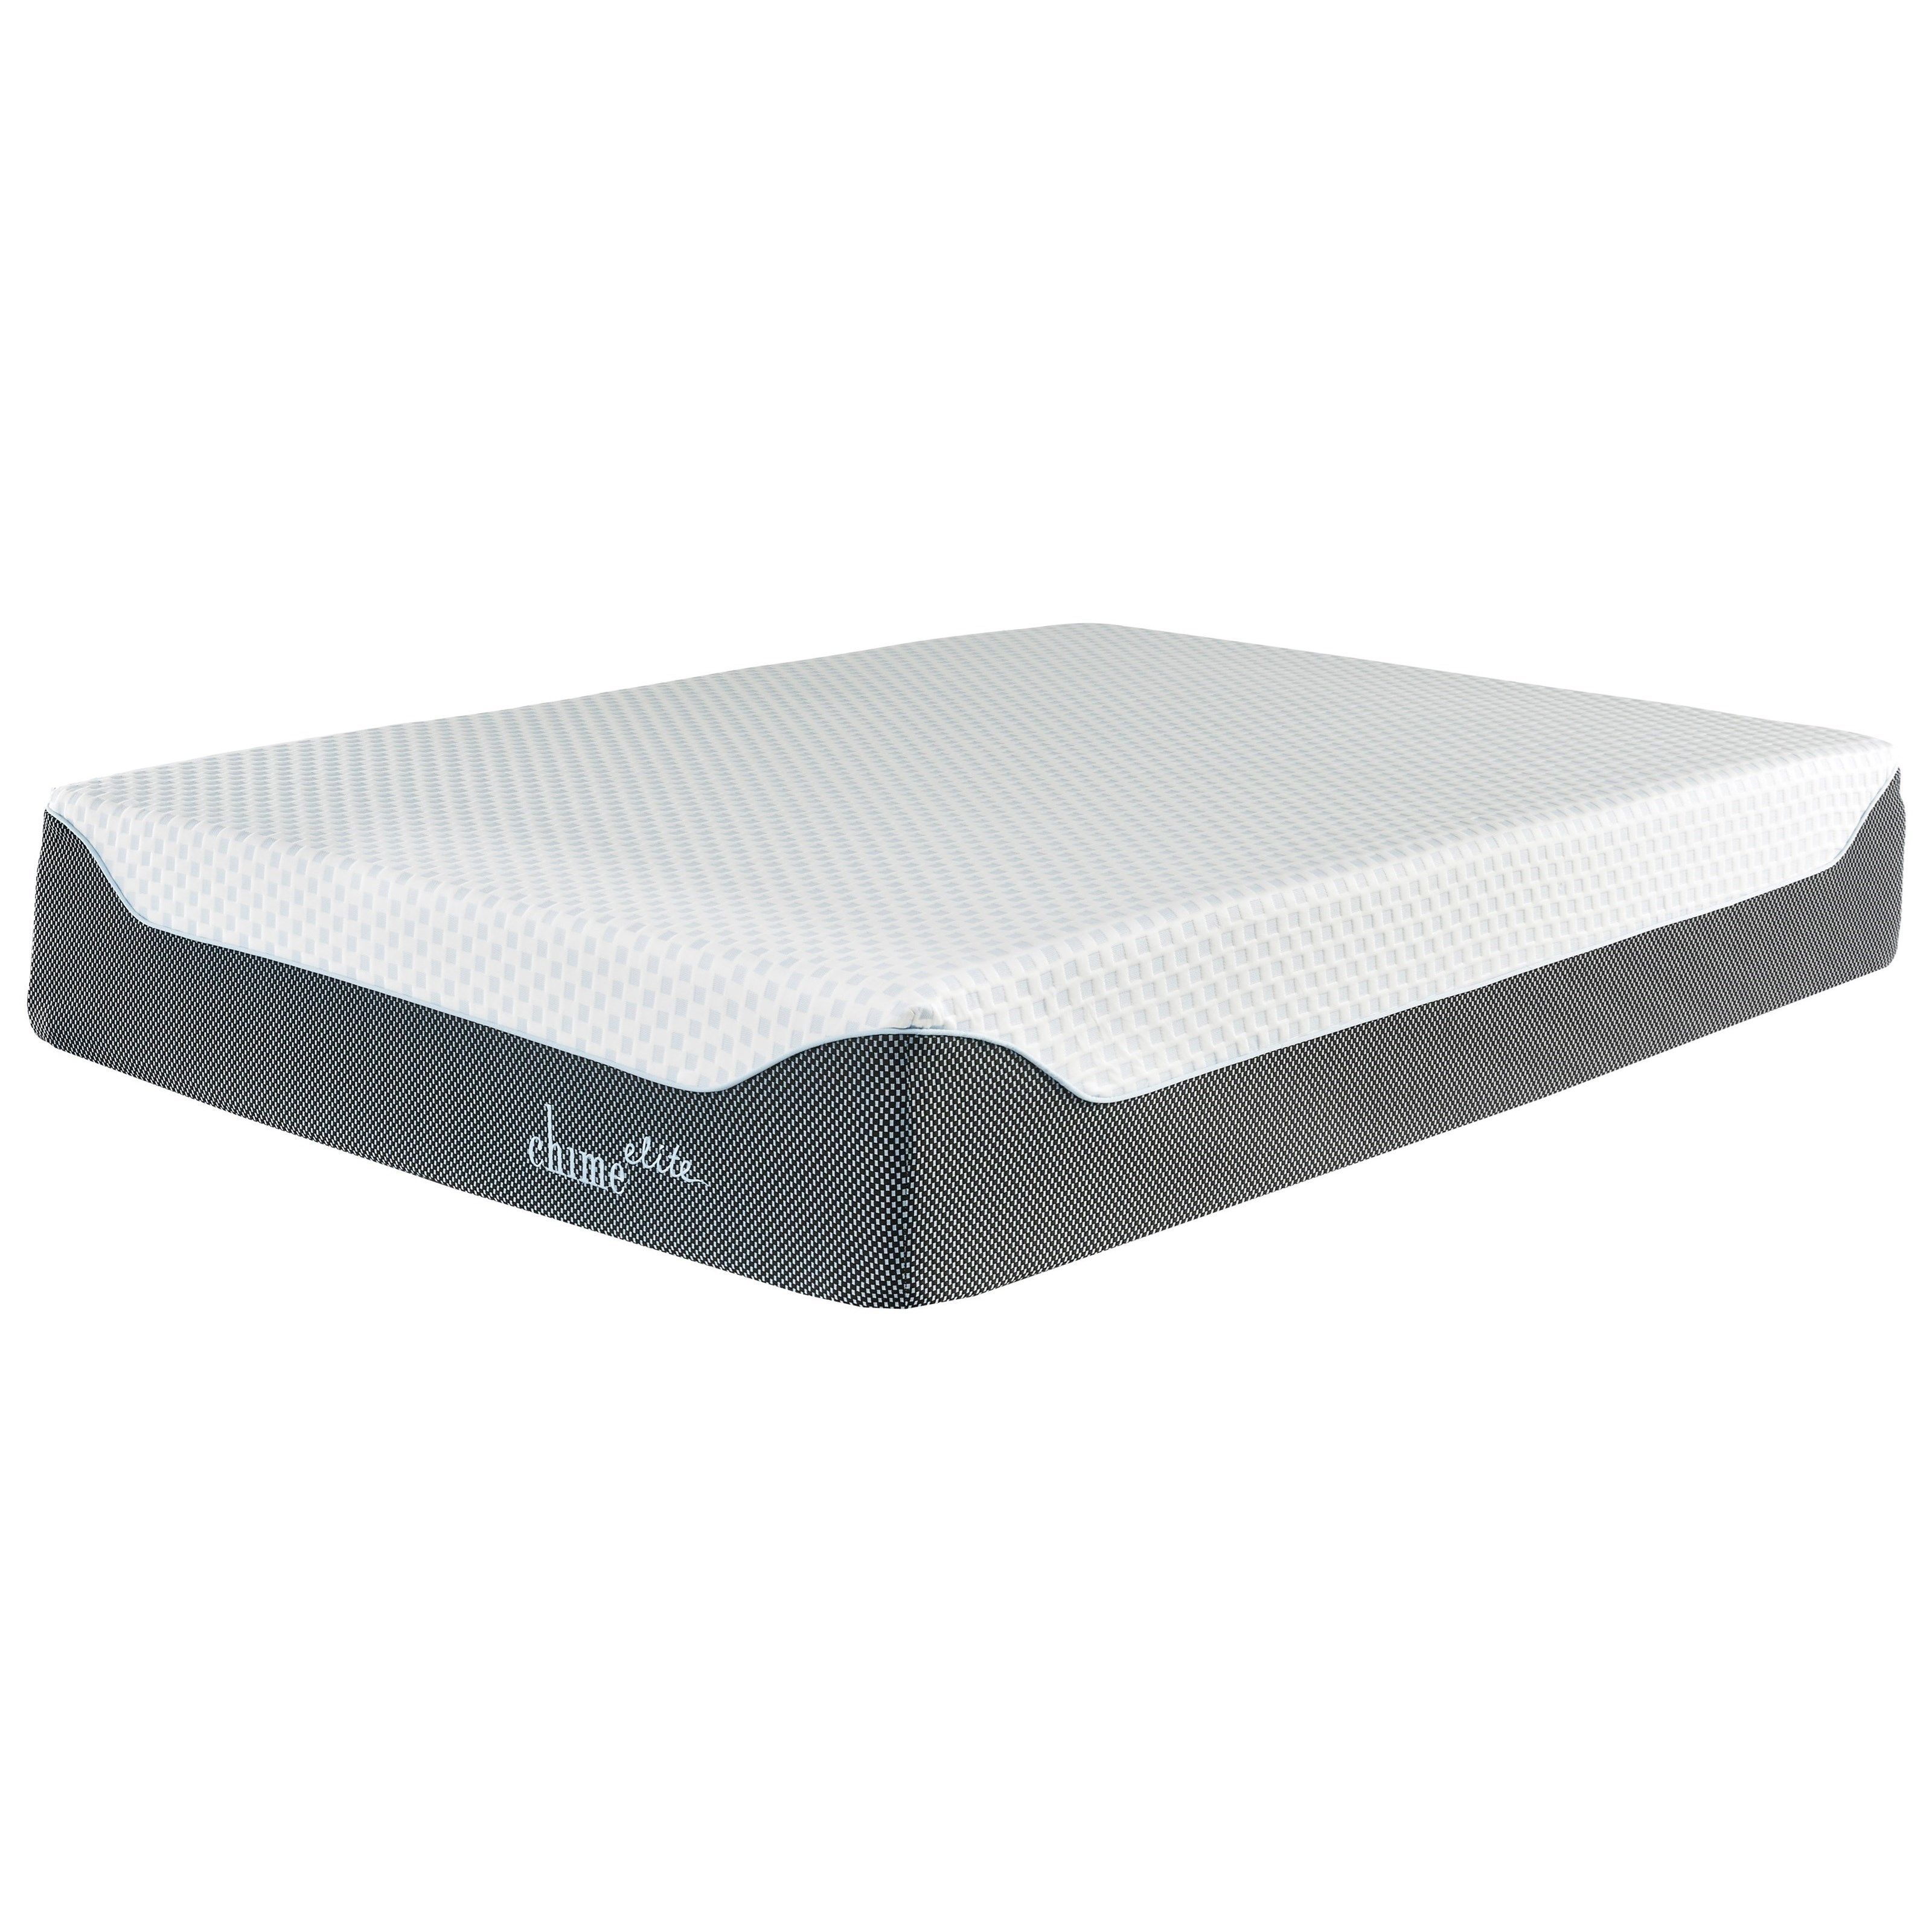 "M714 Chime 14 Elite Queen 14"" Gel Memory Foam Adjustable Set by Sierra Sleep at Simply Home by Lindy's"